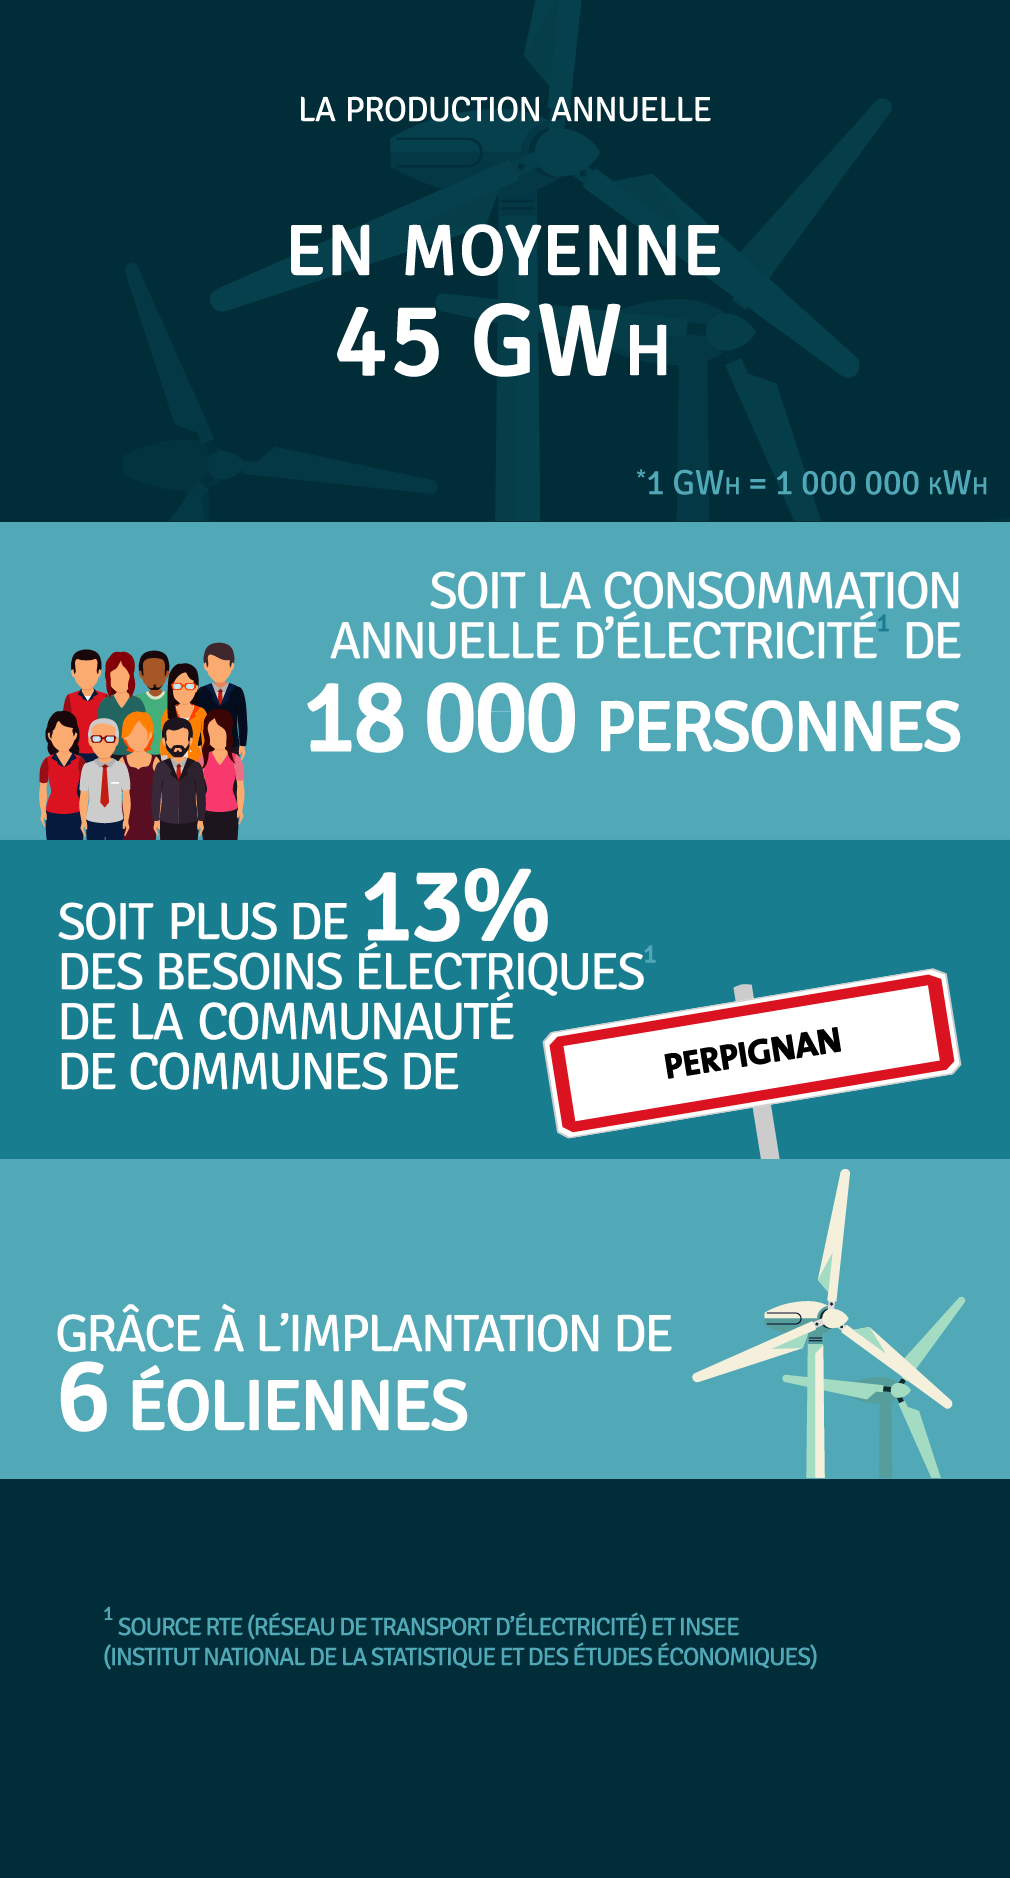 Production annuelle 0 kWh